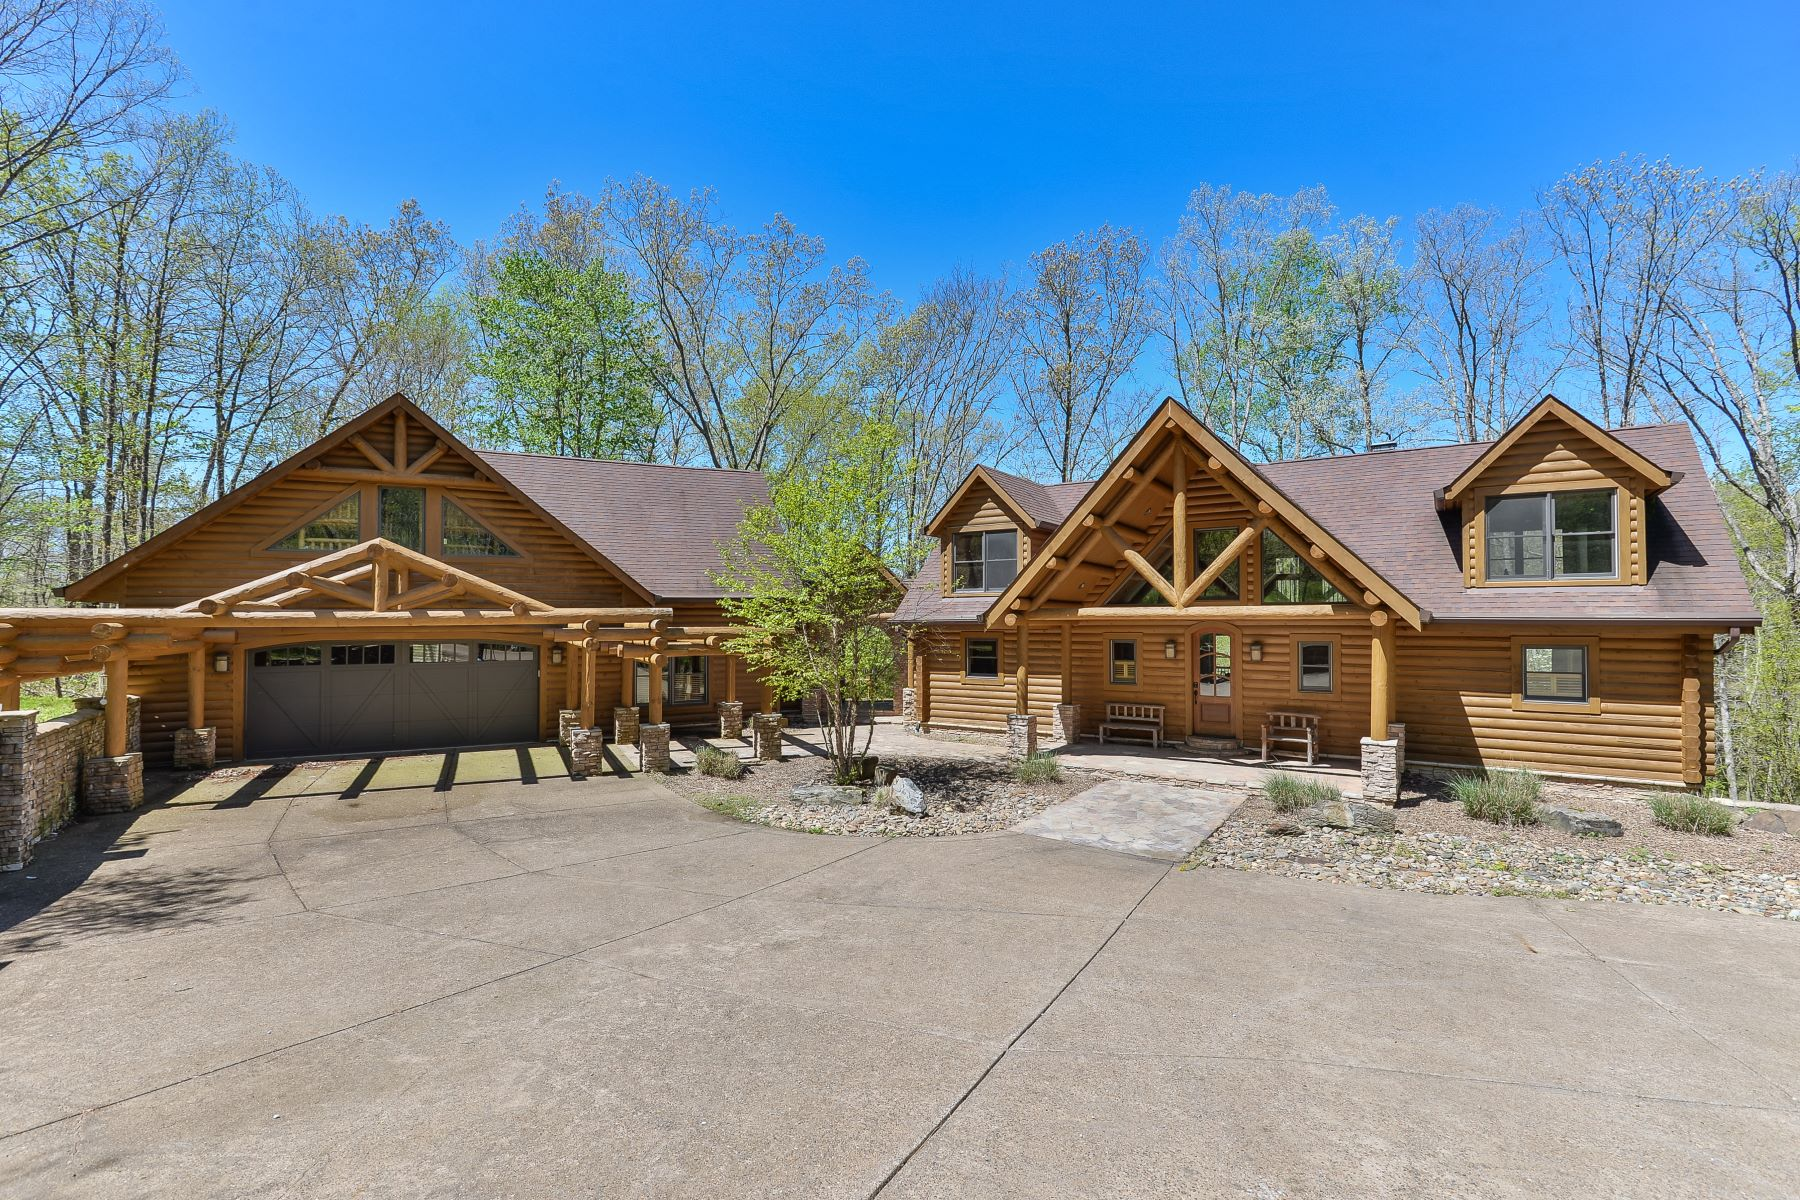 Single Family Homes for Sale at 288 Danes Hill Road Clarkson, Kentucky 42726 United States